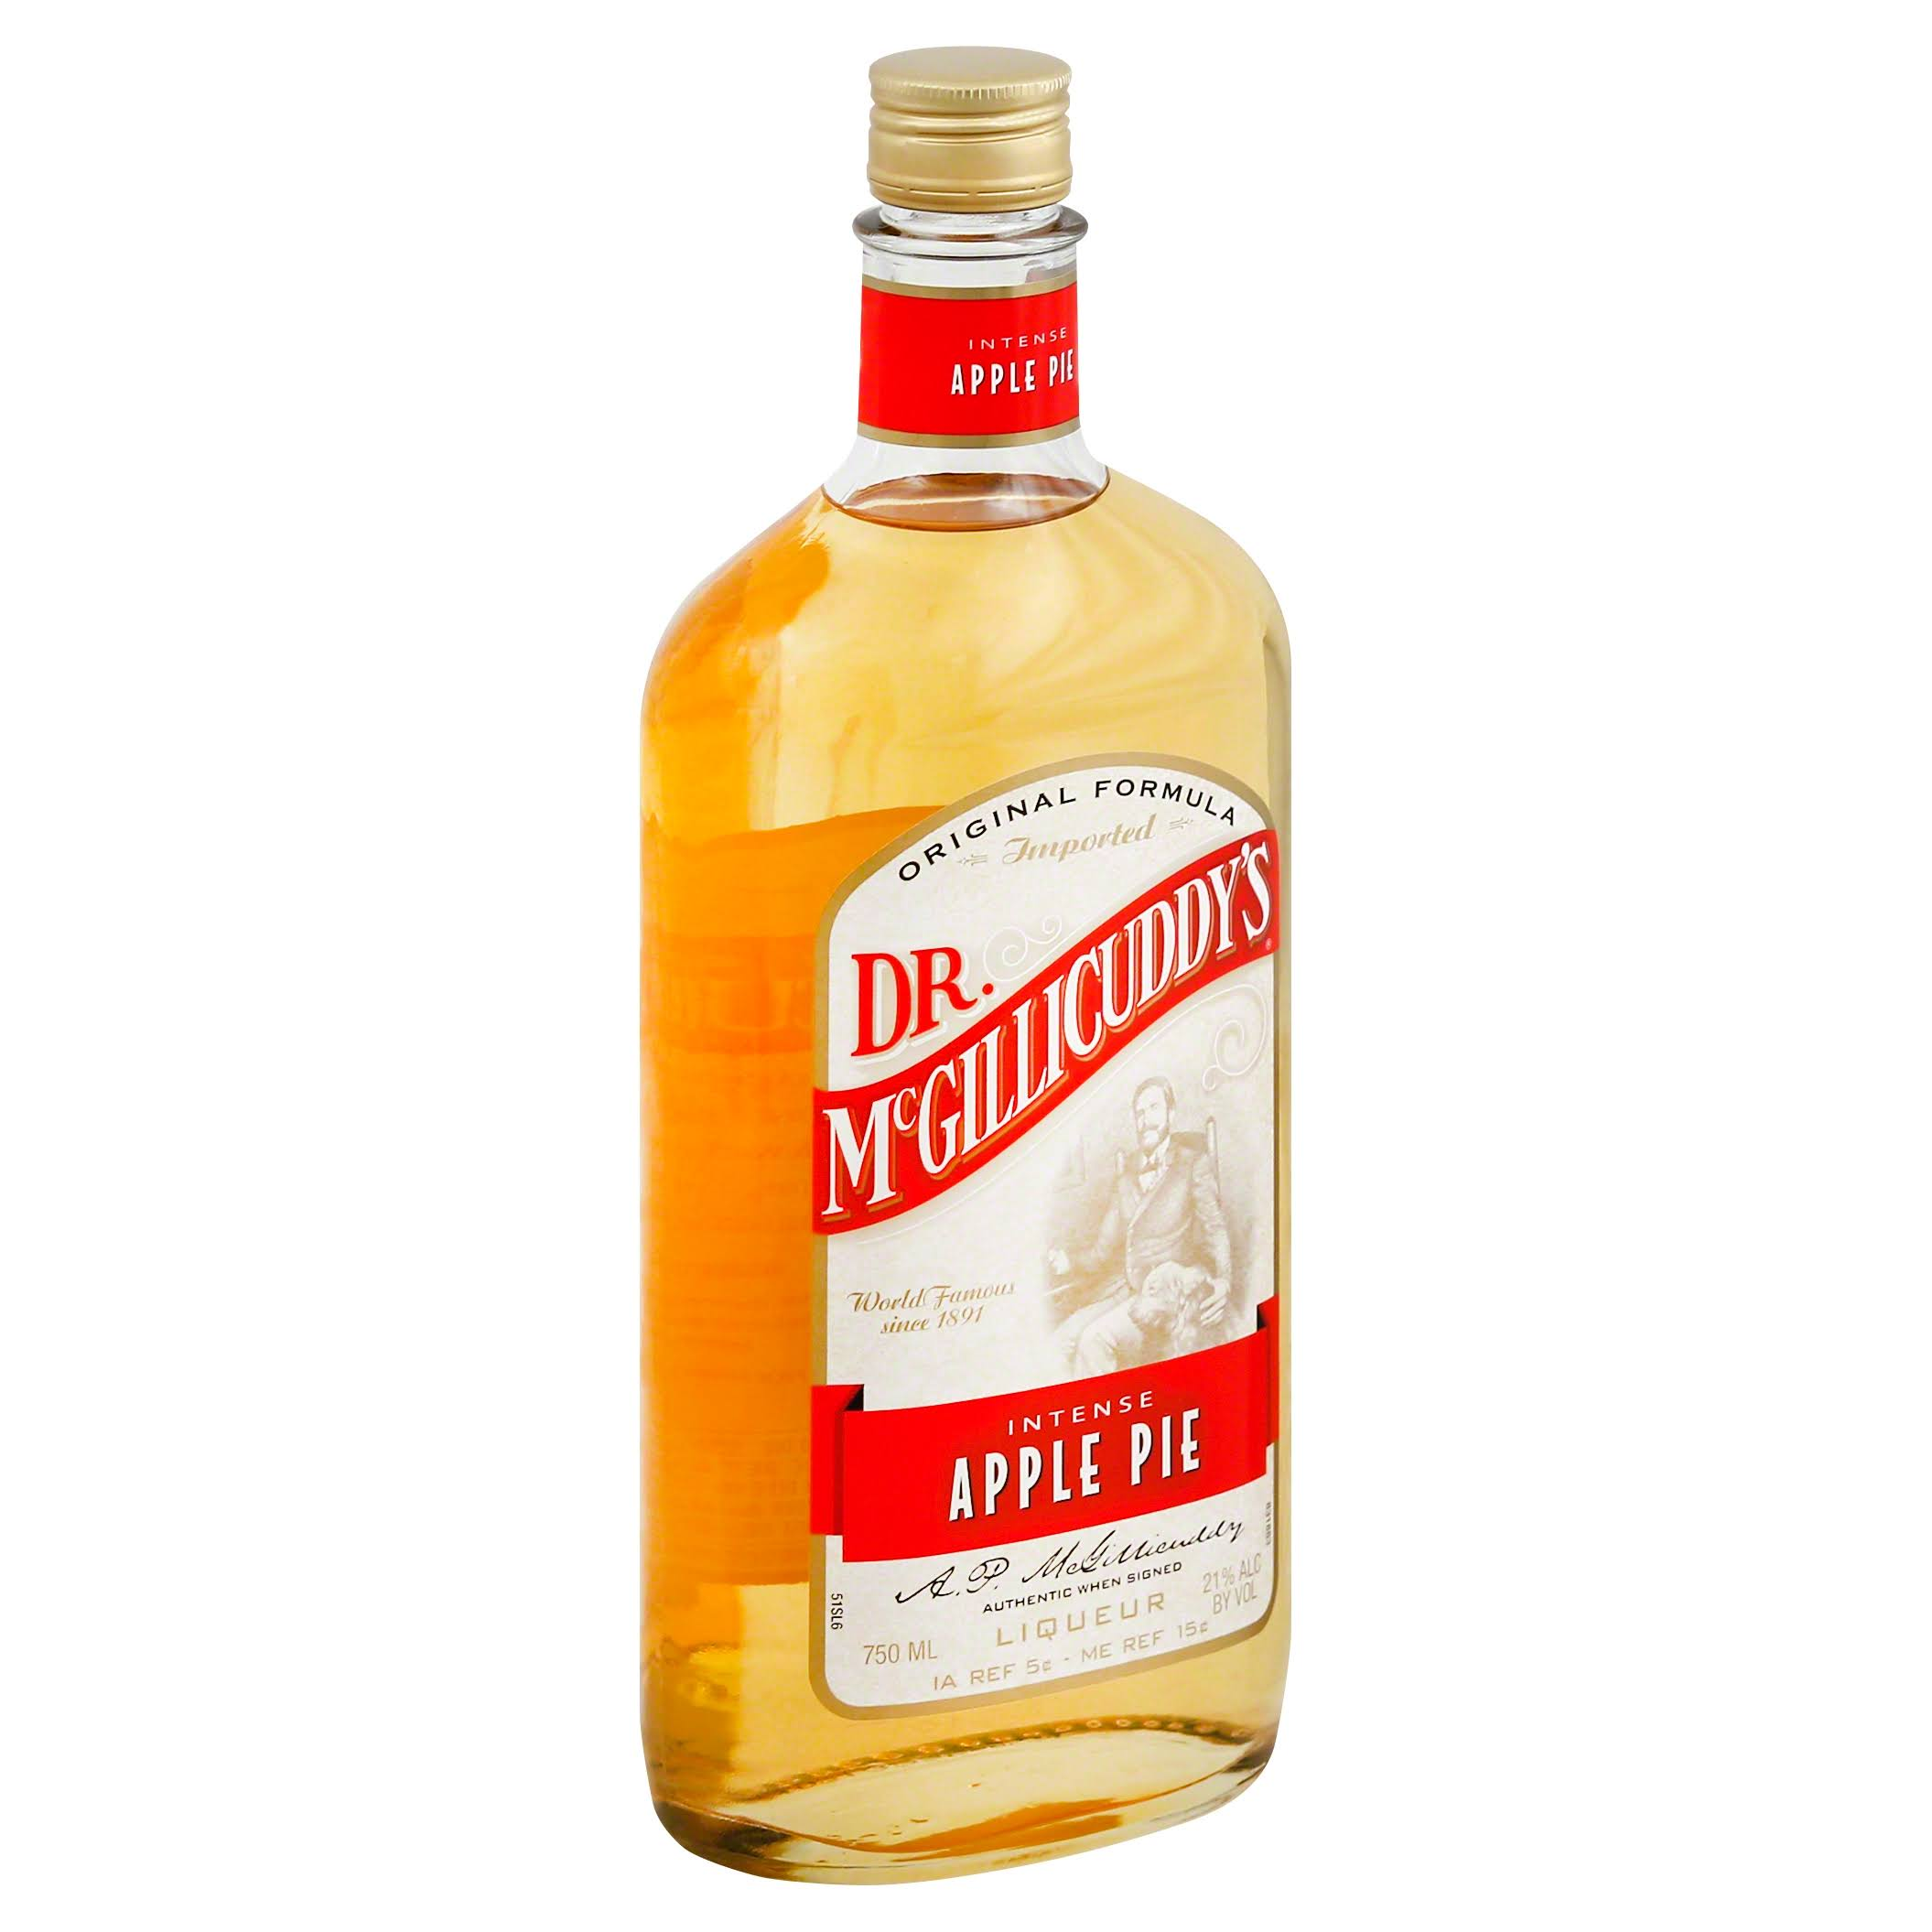 Dr. McGillicuddy's Apple Pie Schnapps - 750ml